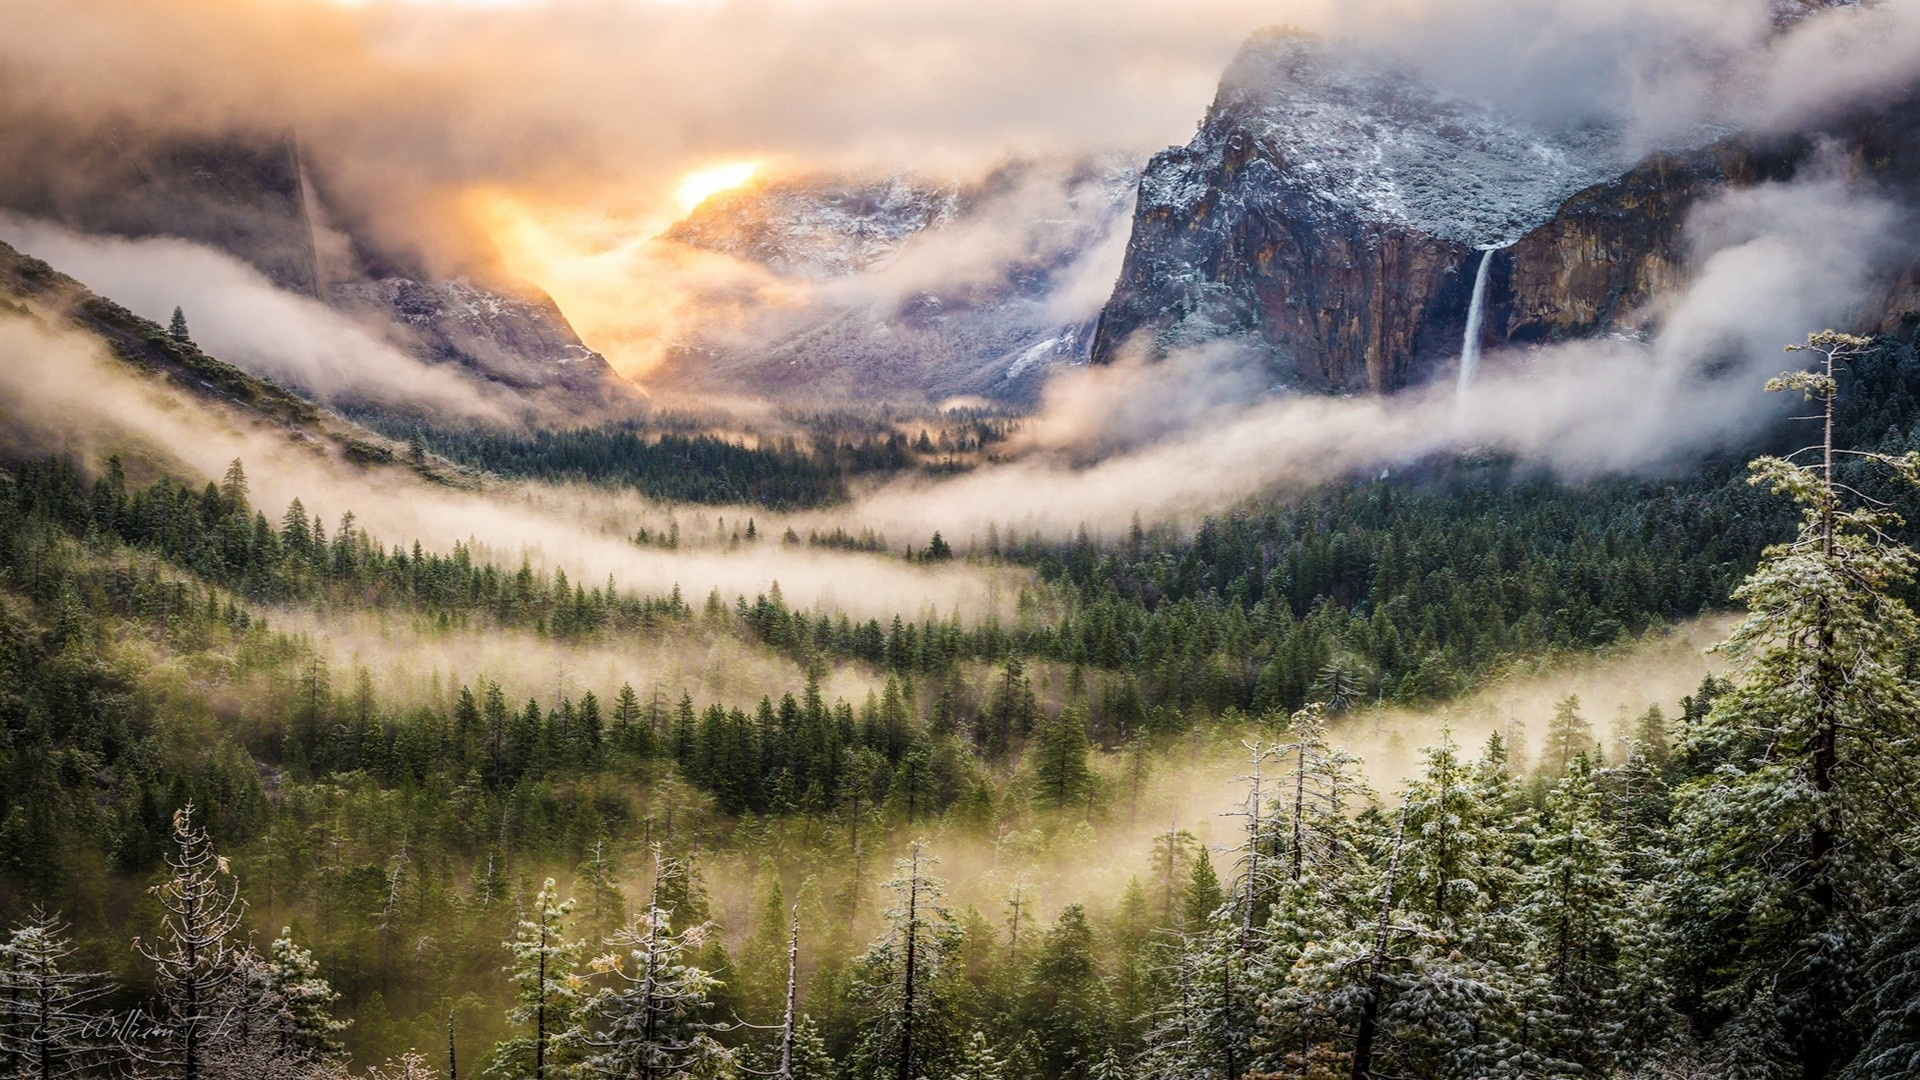 Mountains And Forest In Fog Image